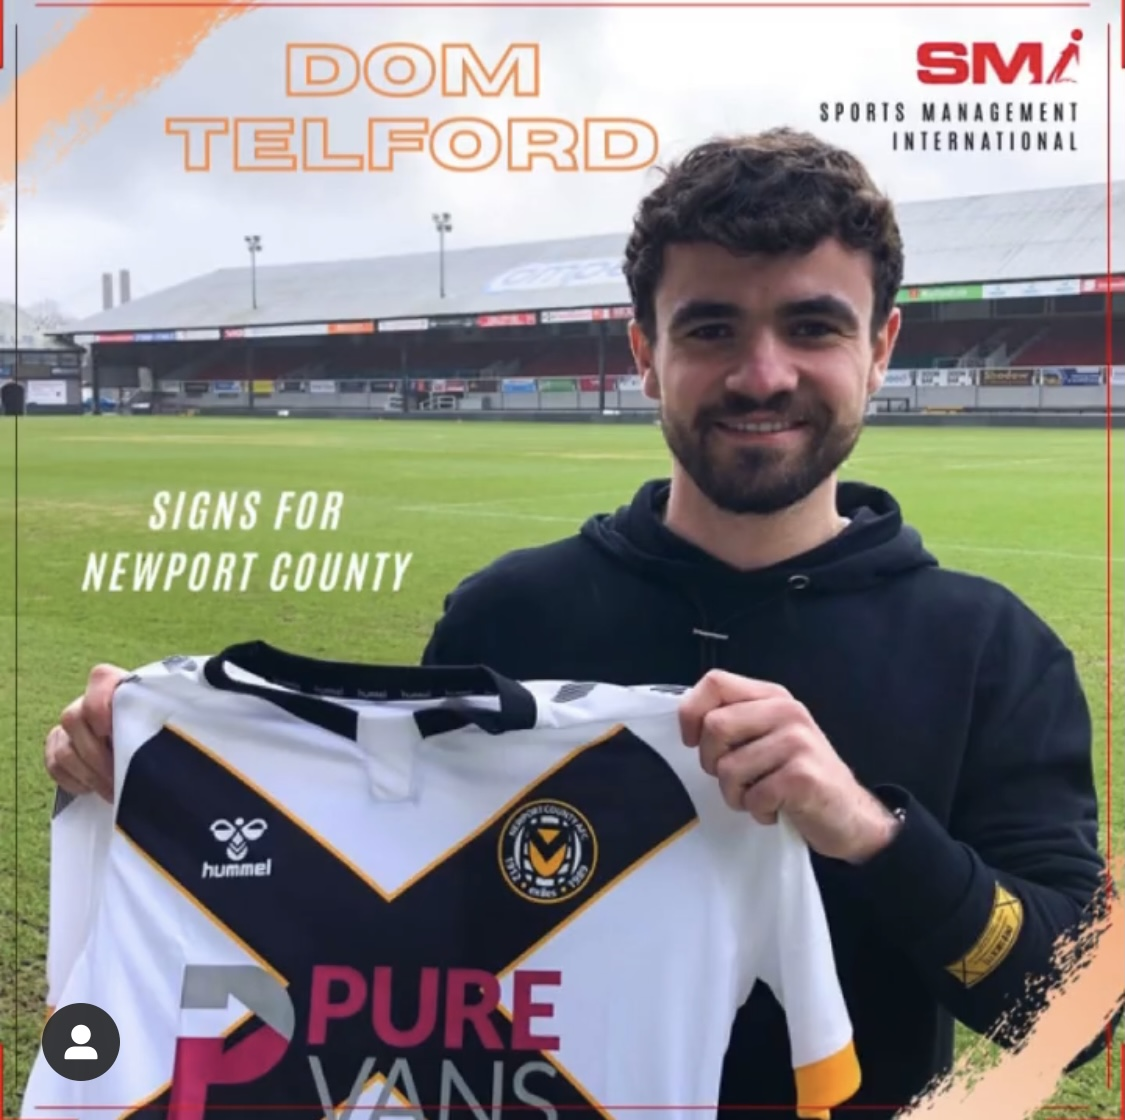 Dom Telford signs for Newport County